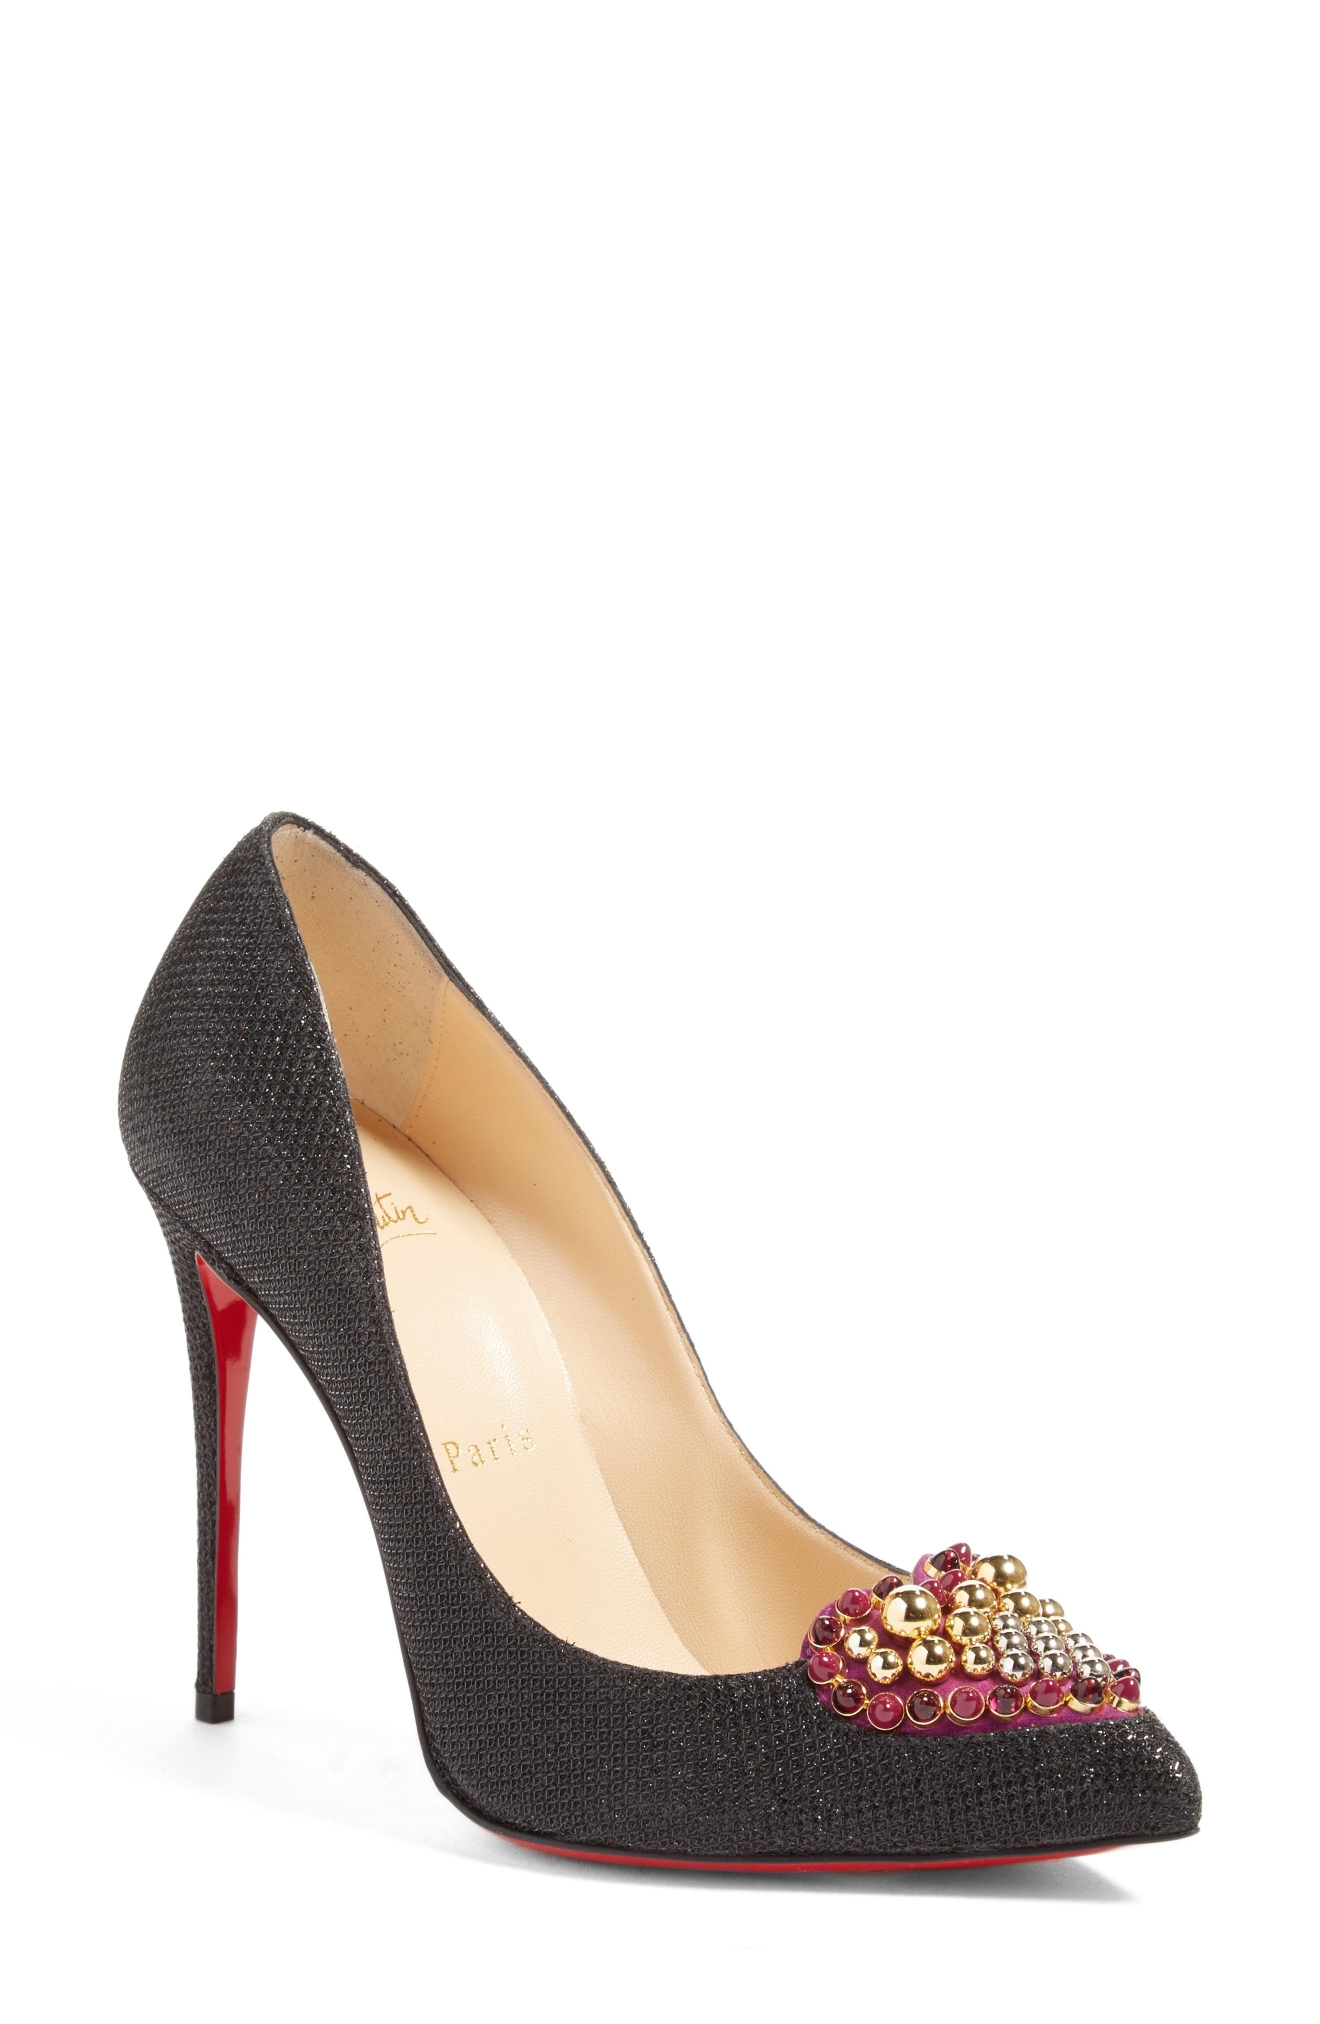 Christian Louboutin Coralta Mia Heart Pump $845 (Nordstrom)